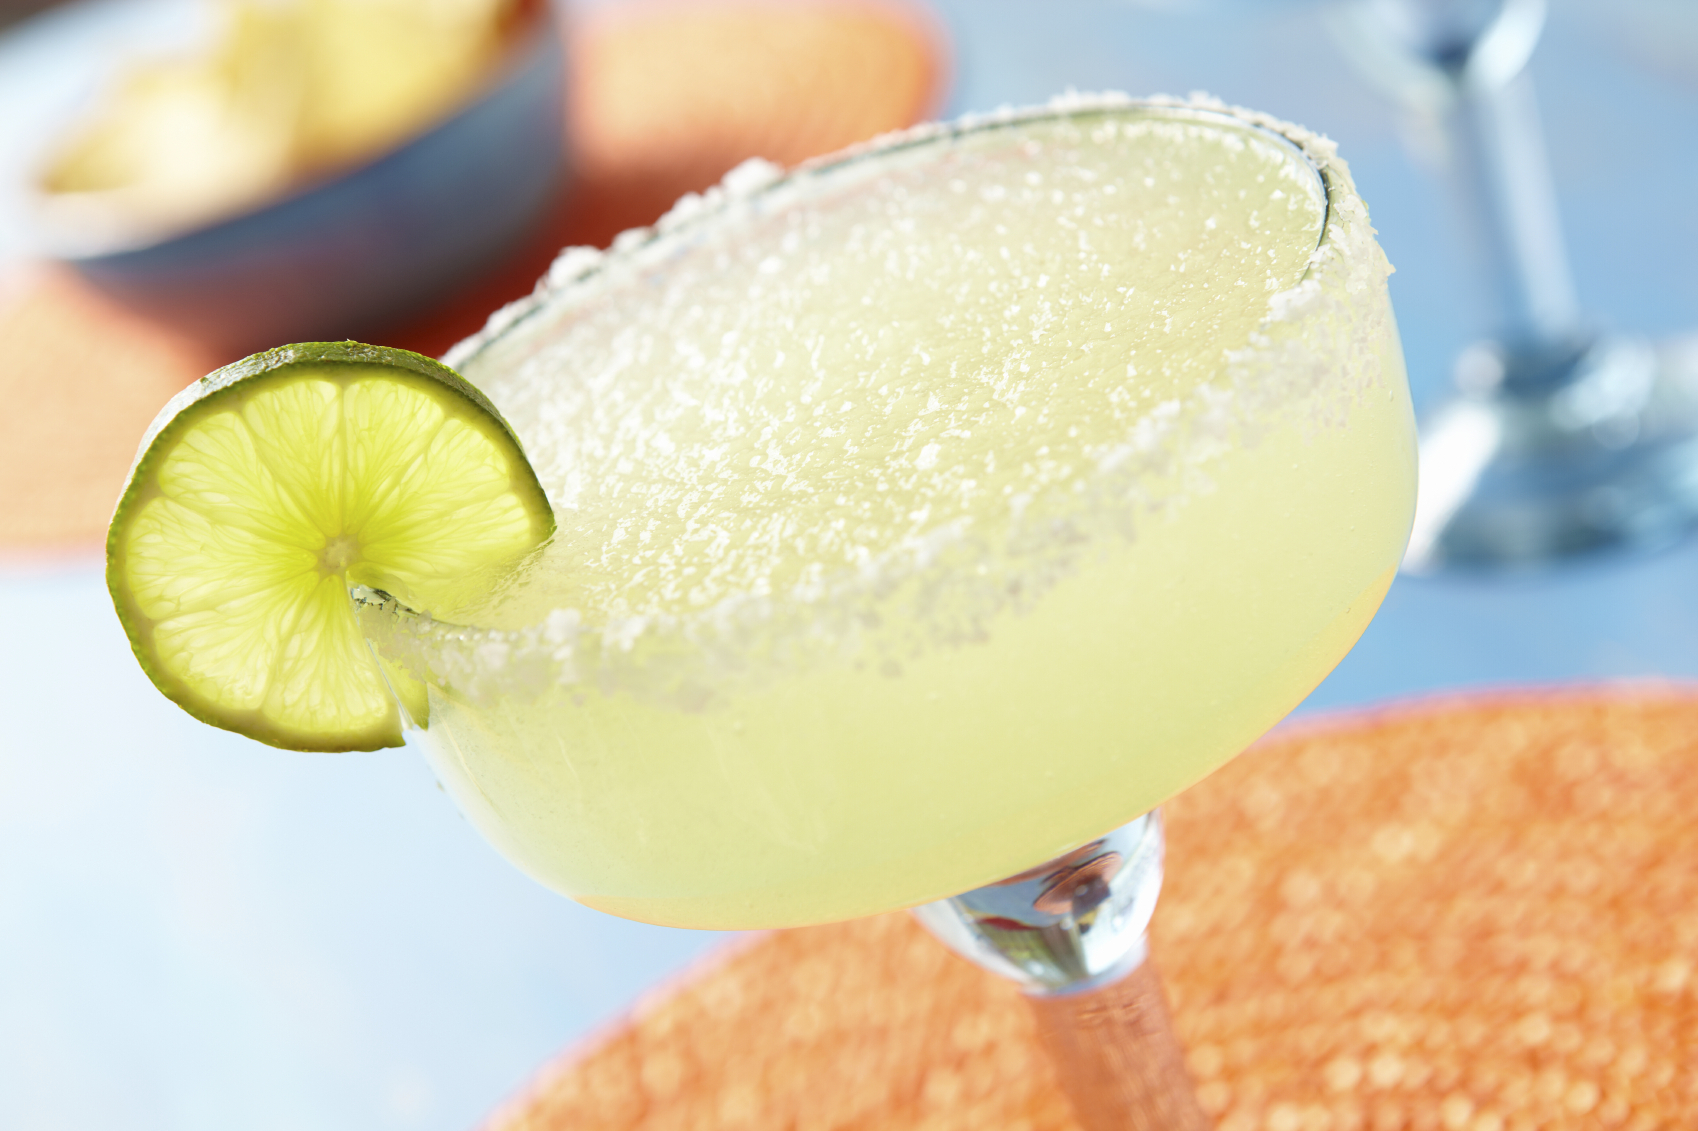 The Lime Shortage: Still Messing With Your Margarita